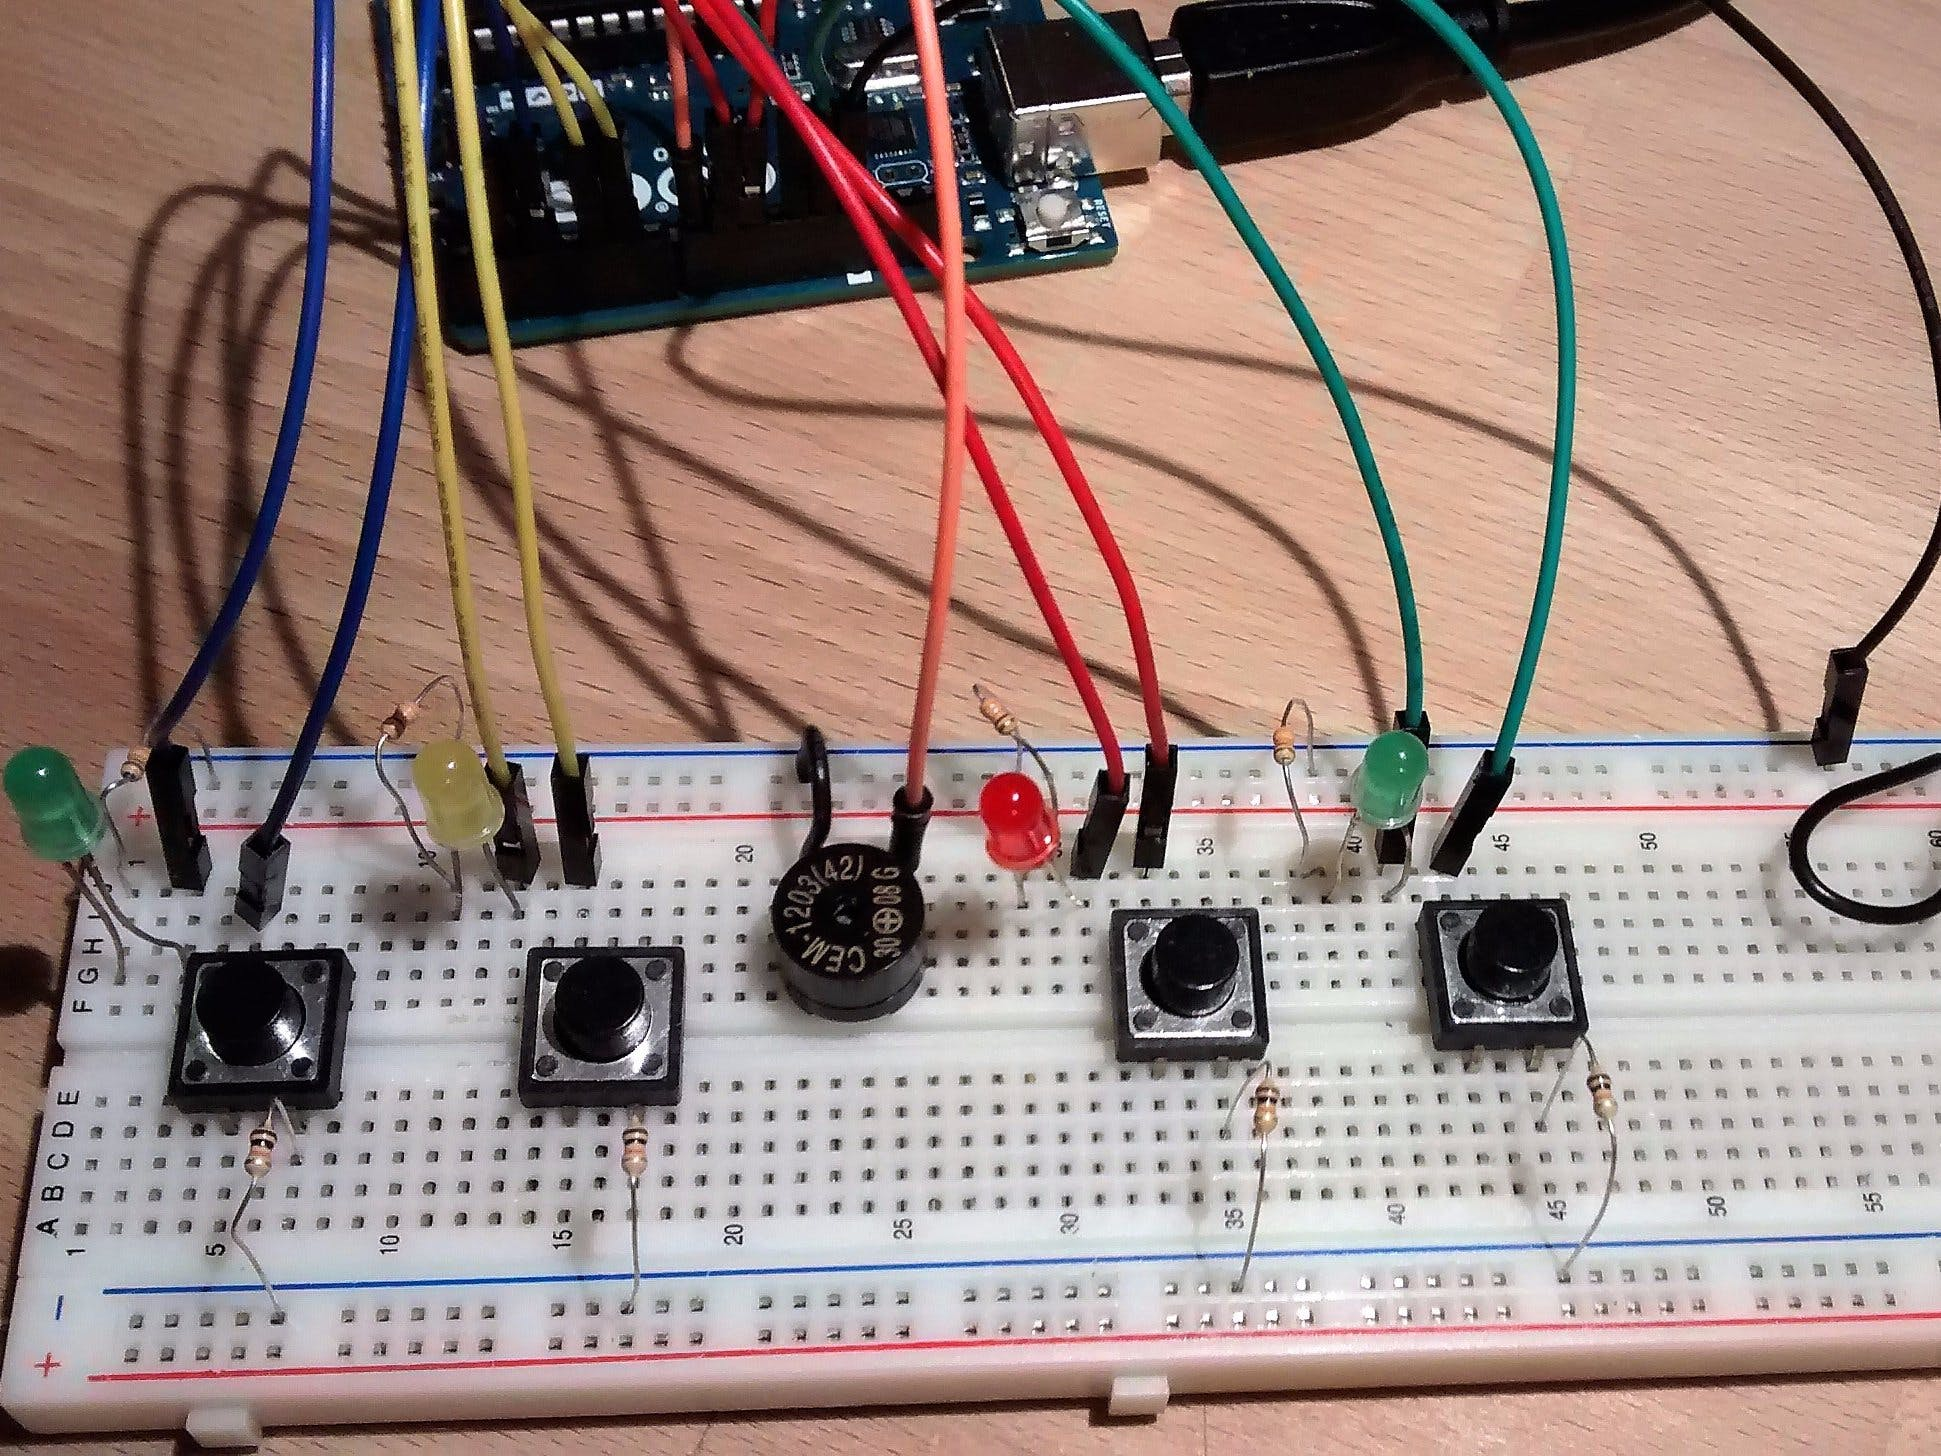 Breadboard to PCB Part 1 - Making the Simon Says Game